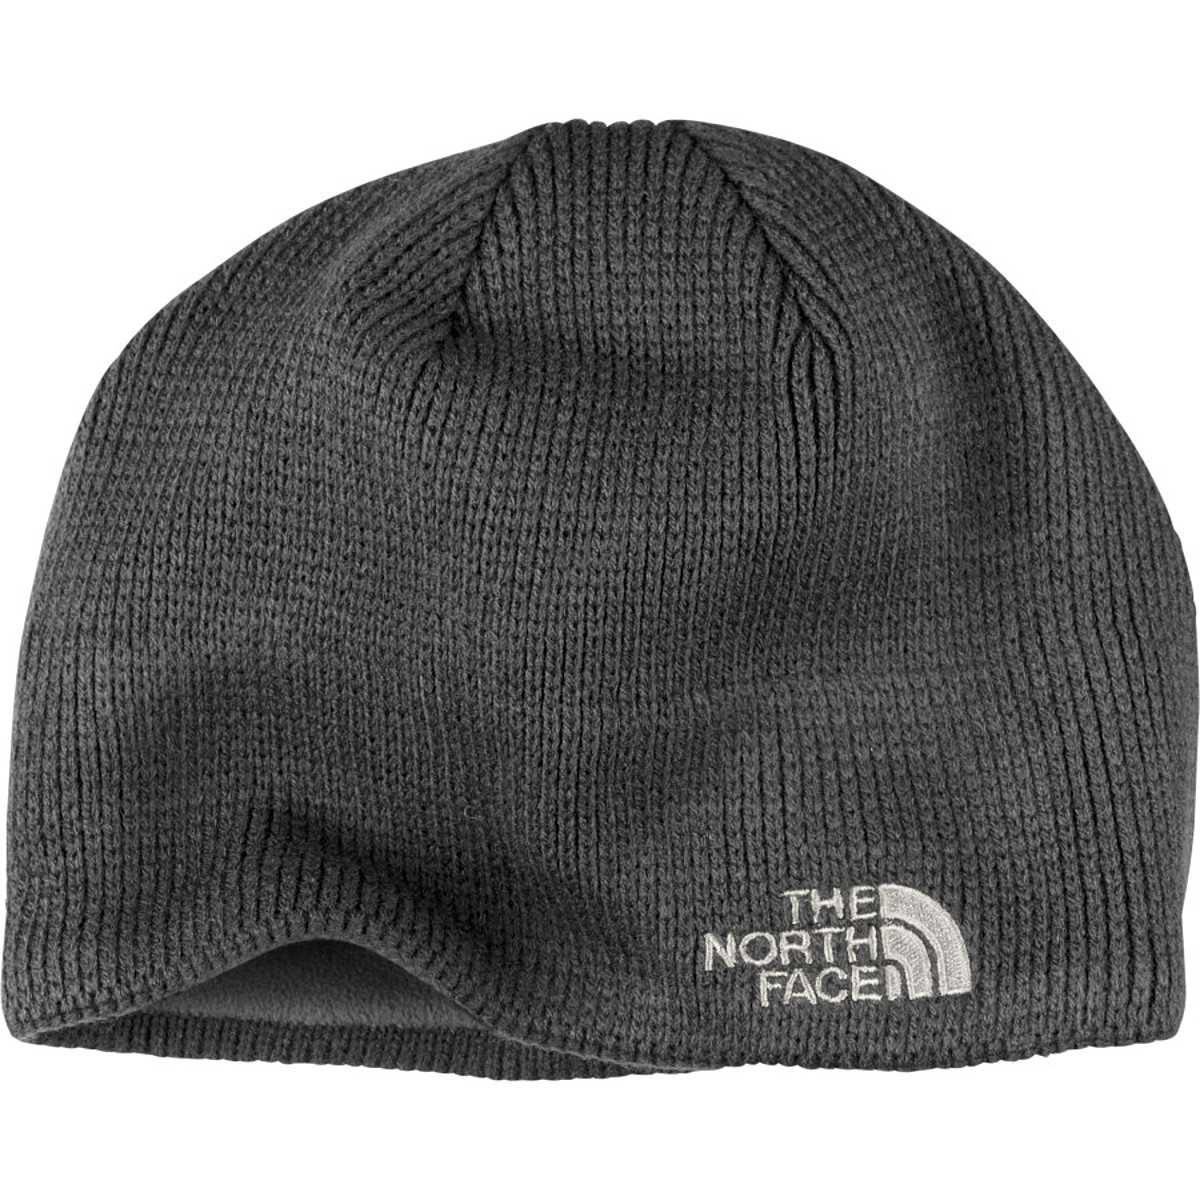 Best Overall  The North Face Bones Beanie 97c9f10c250